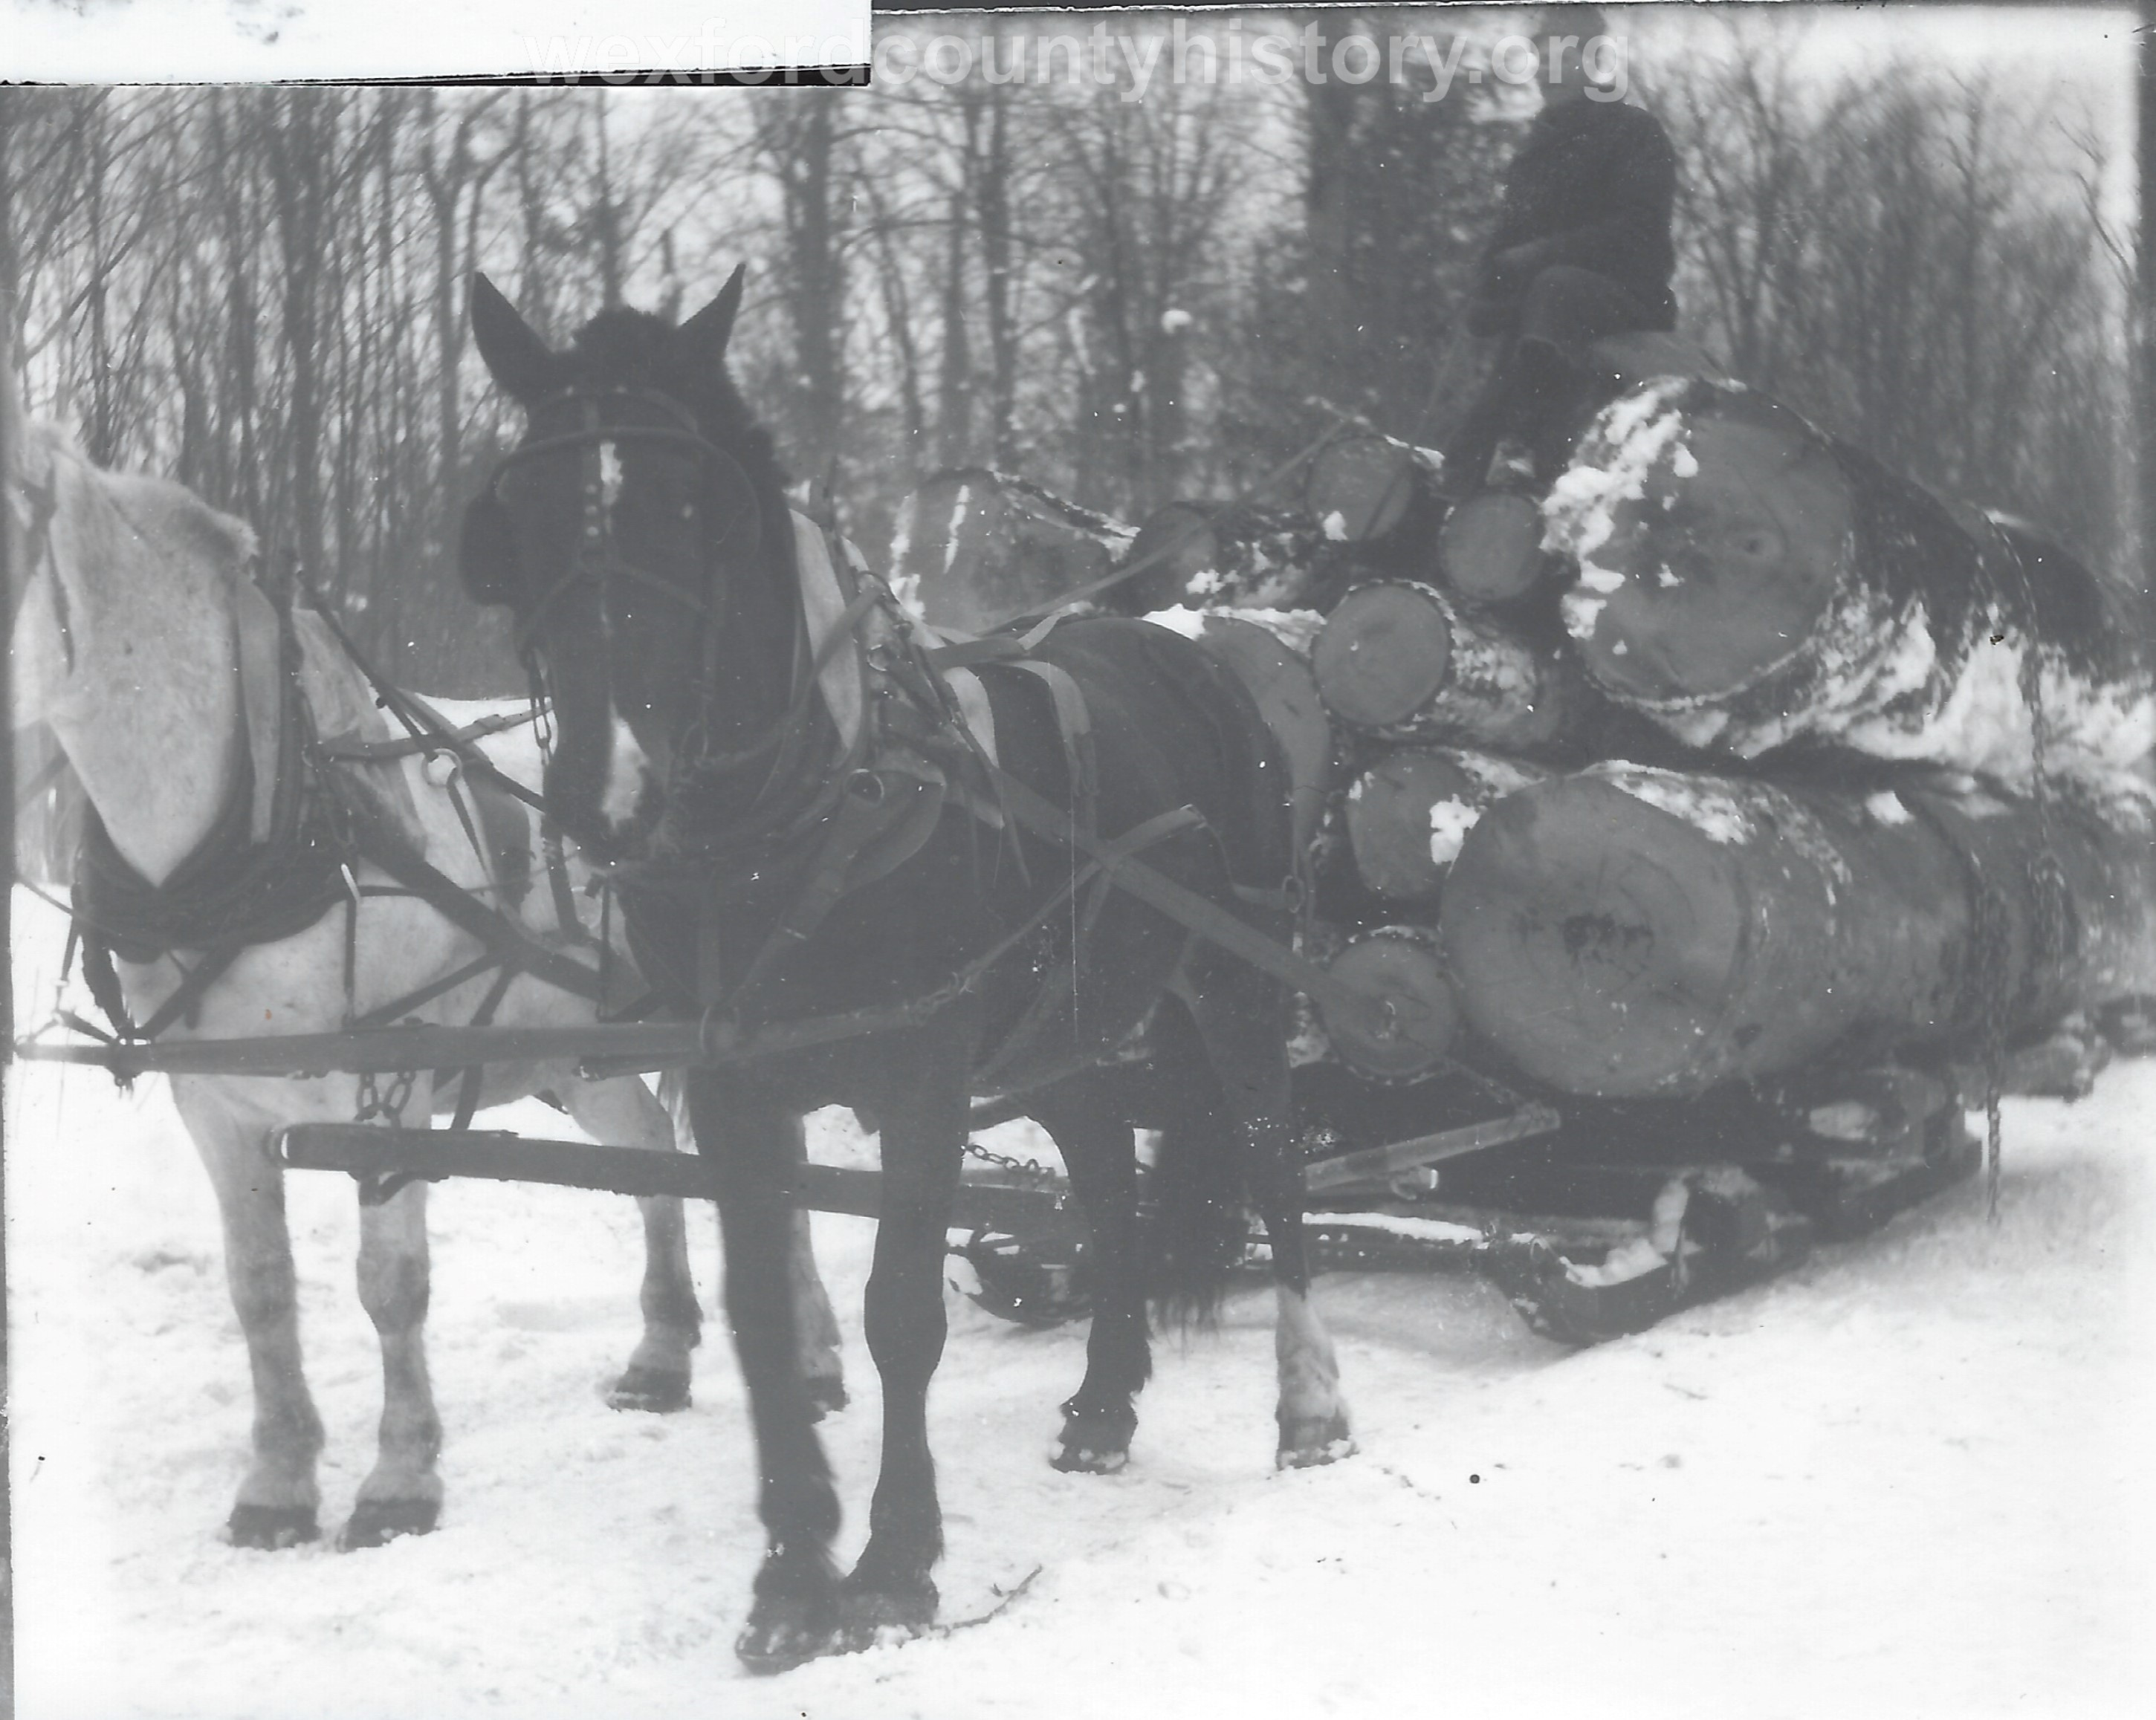 Cadillac-Lumber-Horse-Team-Pulling-Load-Of-Logs-On-Sled-9